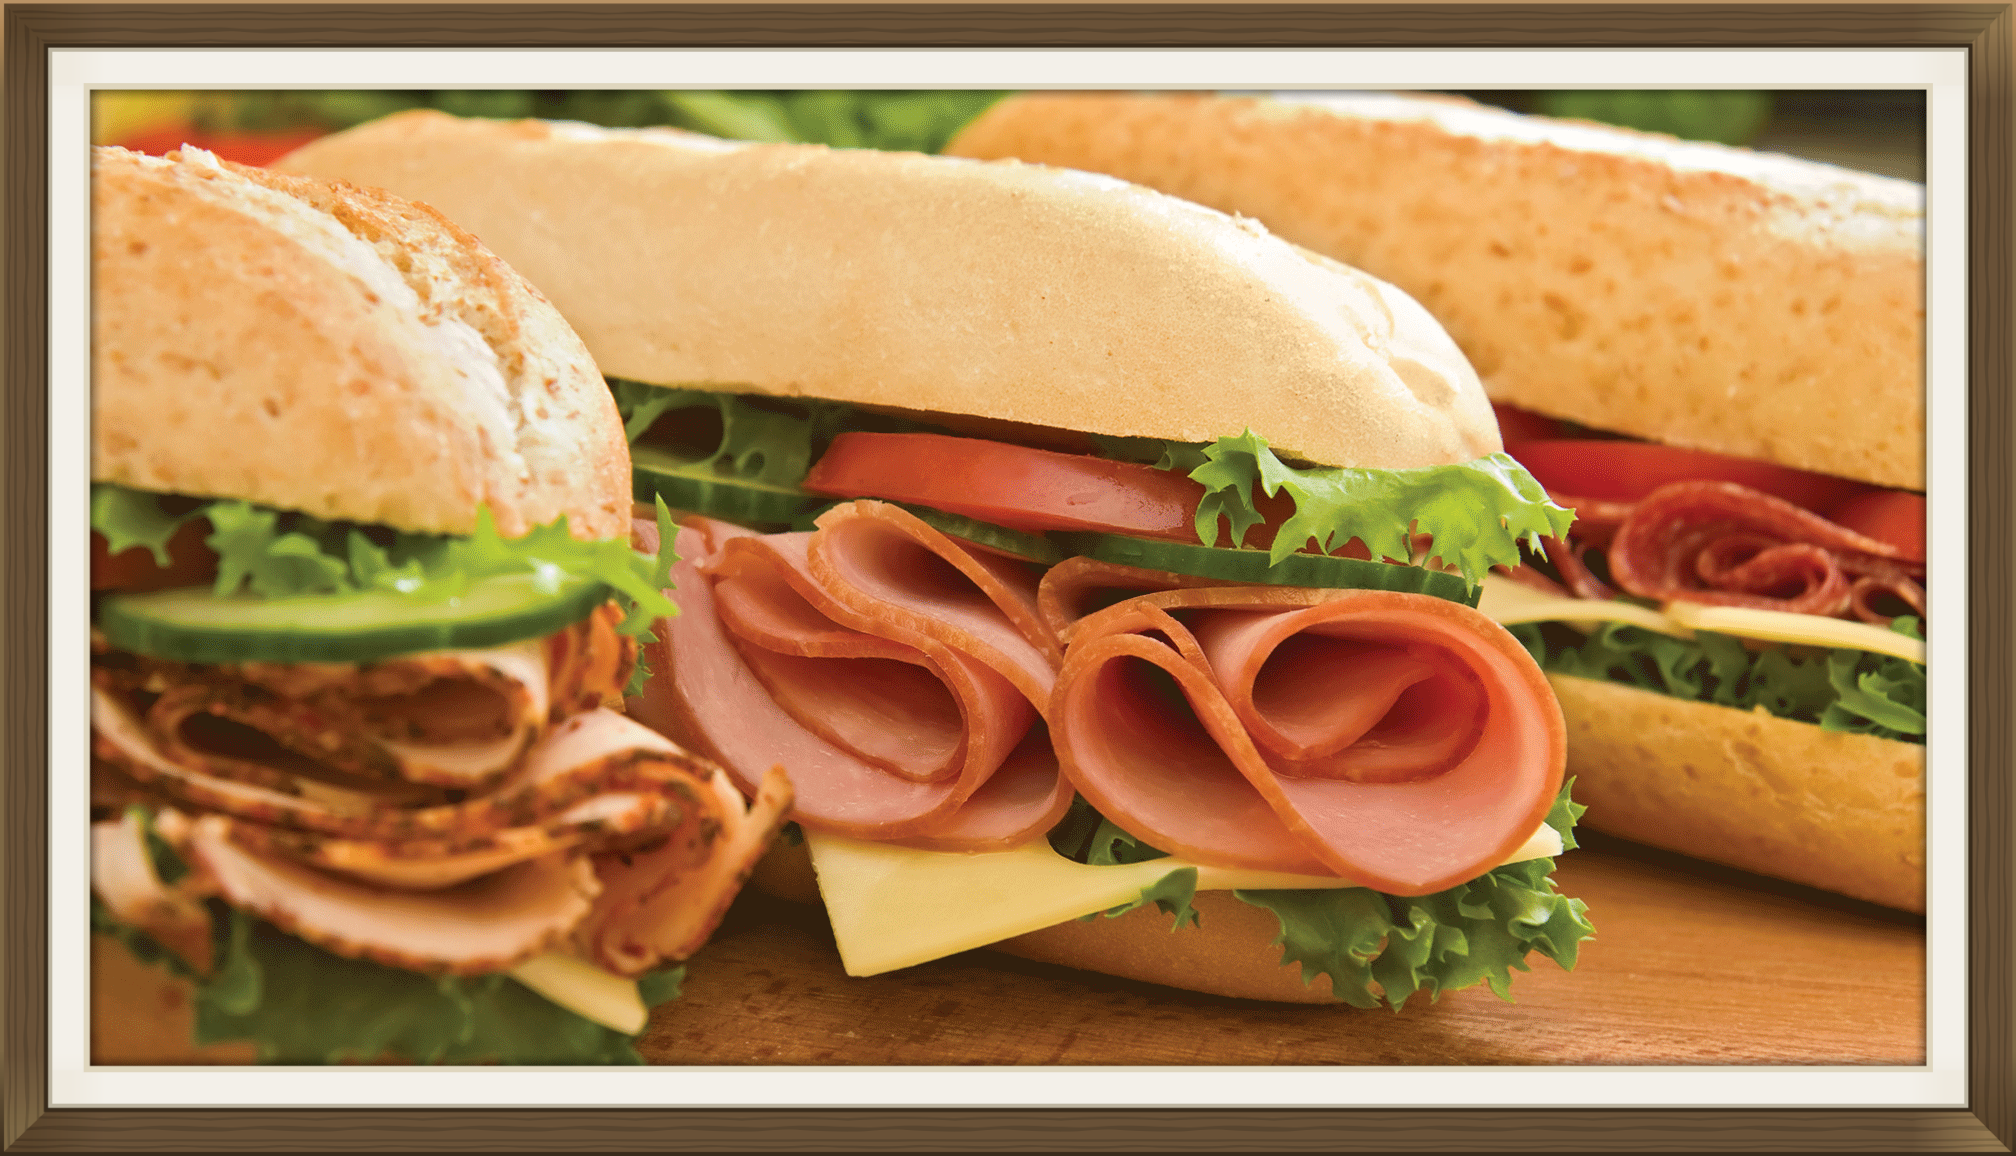 Pack a perfect picnic with our choice deli meats and fresh sandwich rolls, breads and, of course, desserts.